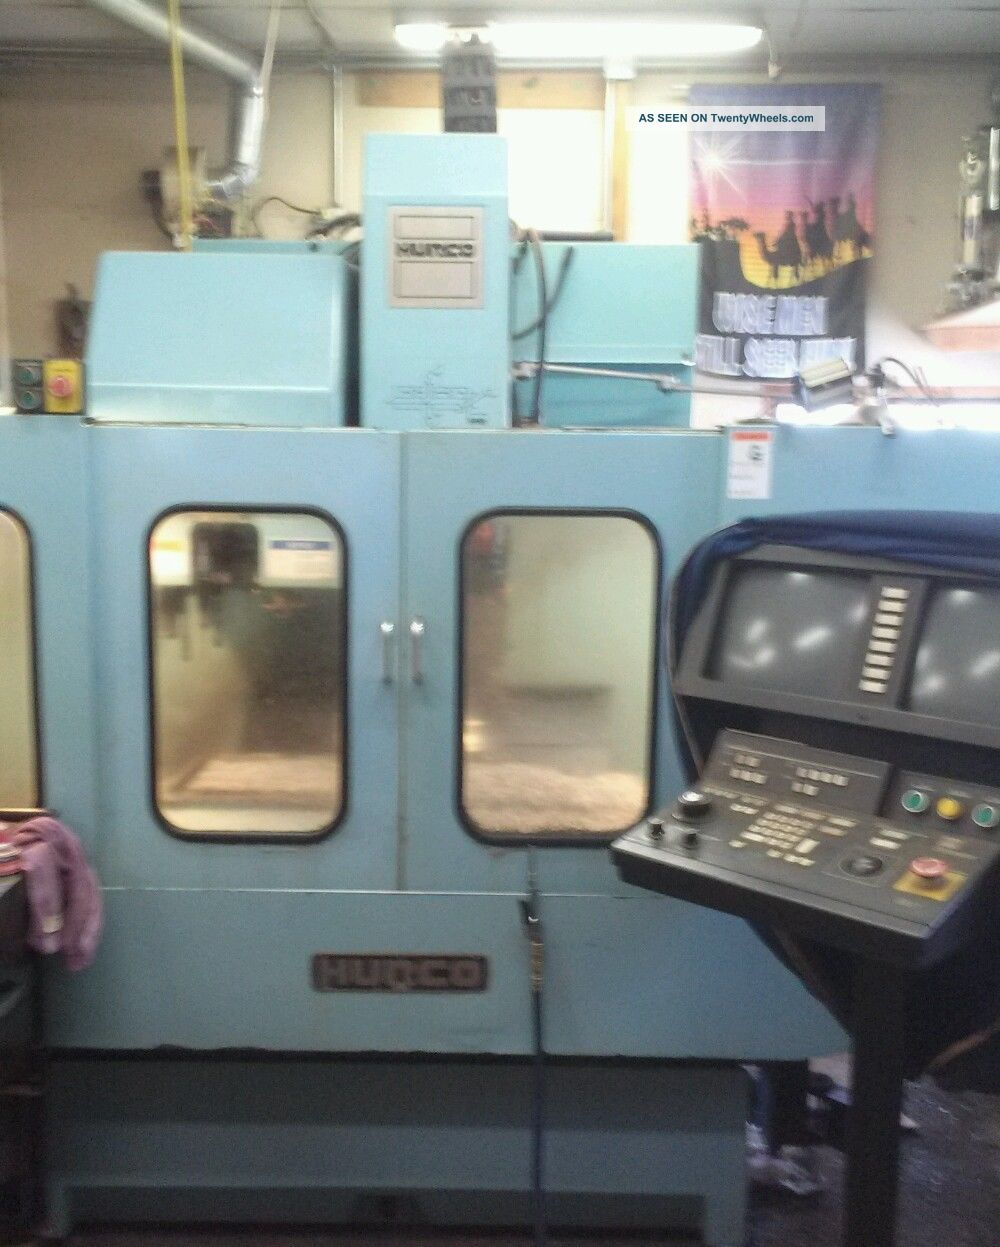 Hurco Vertical Milling Machining Center Bmc - 20 Sn Bj - 9002050 - A Milling Machines photo